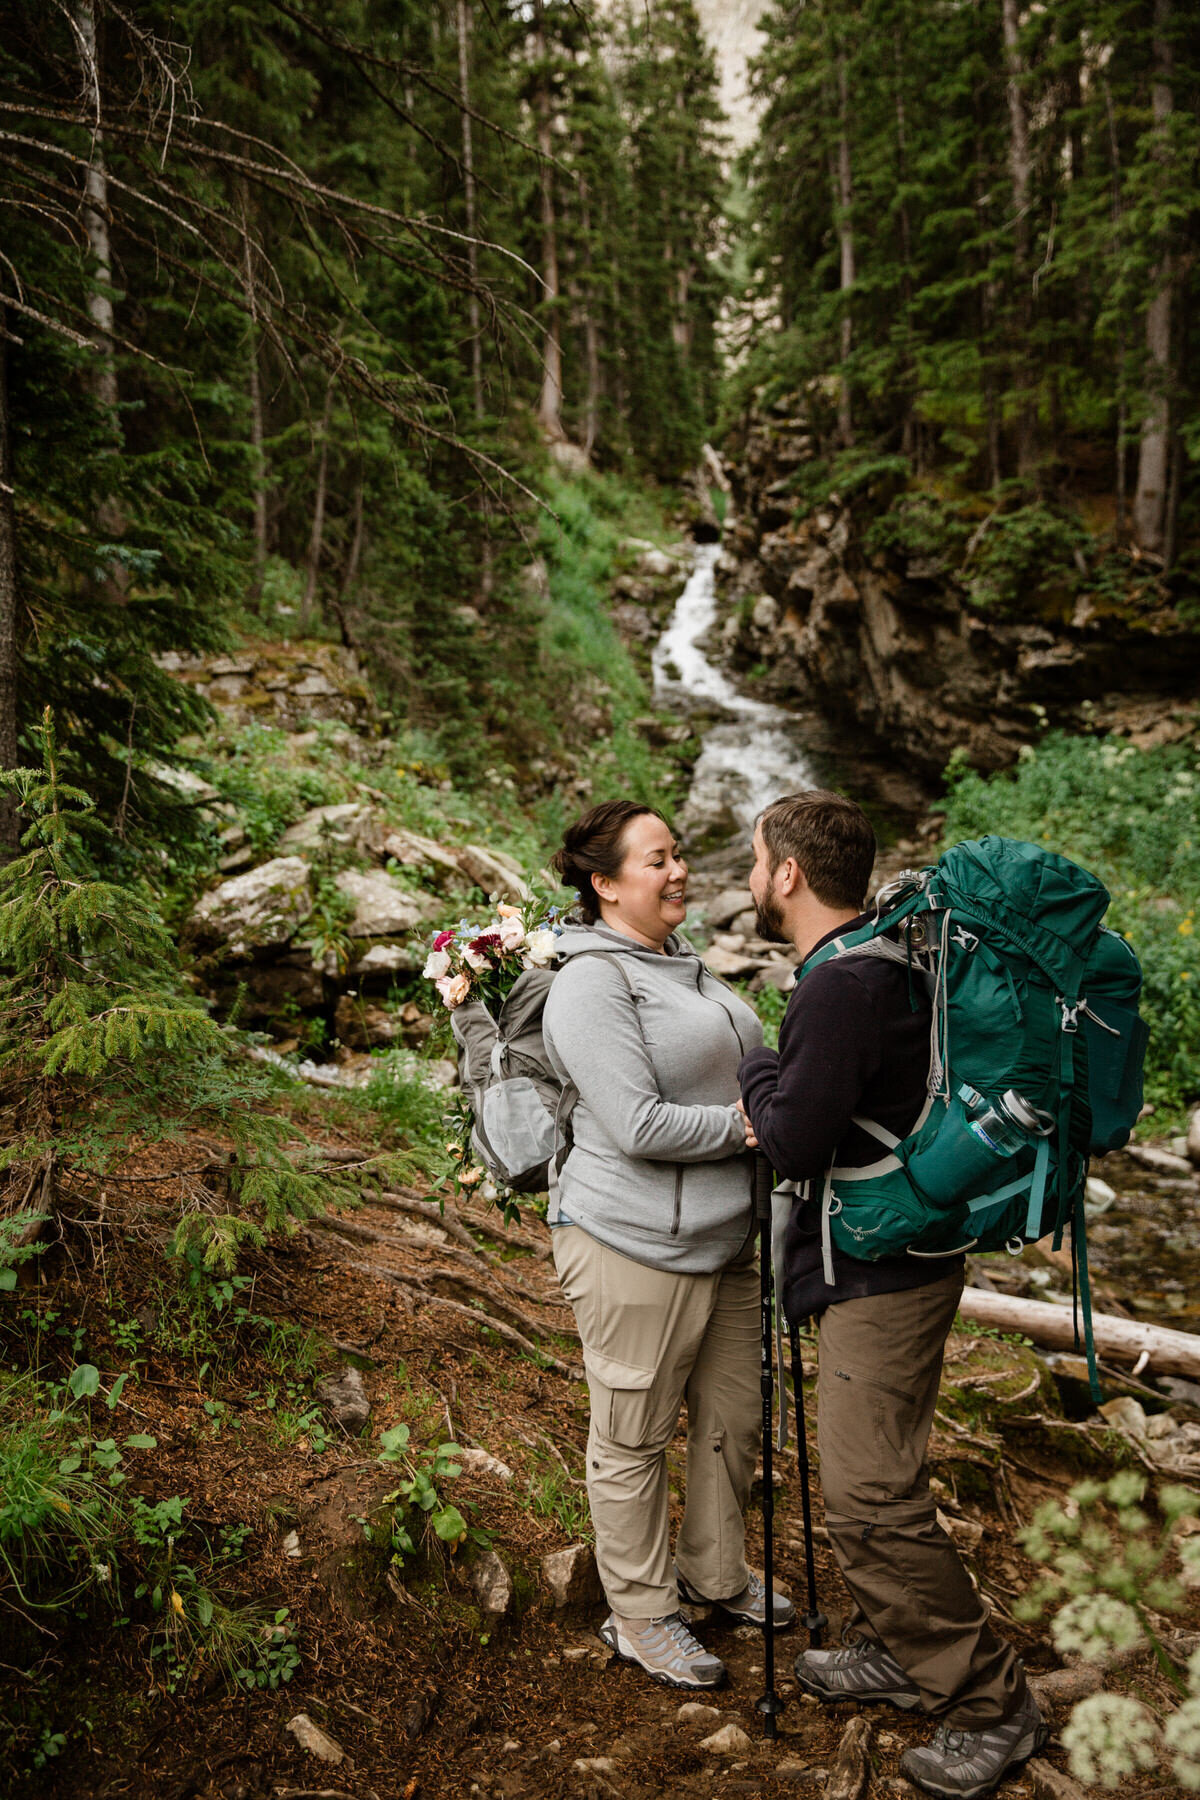 A couple holds each other's hands and smiles at each other while wearing hiking clothes, packs, and with a beautiful forest creek behind them